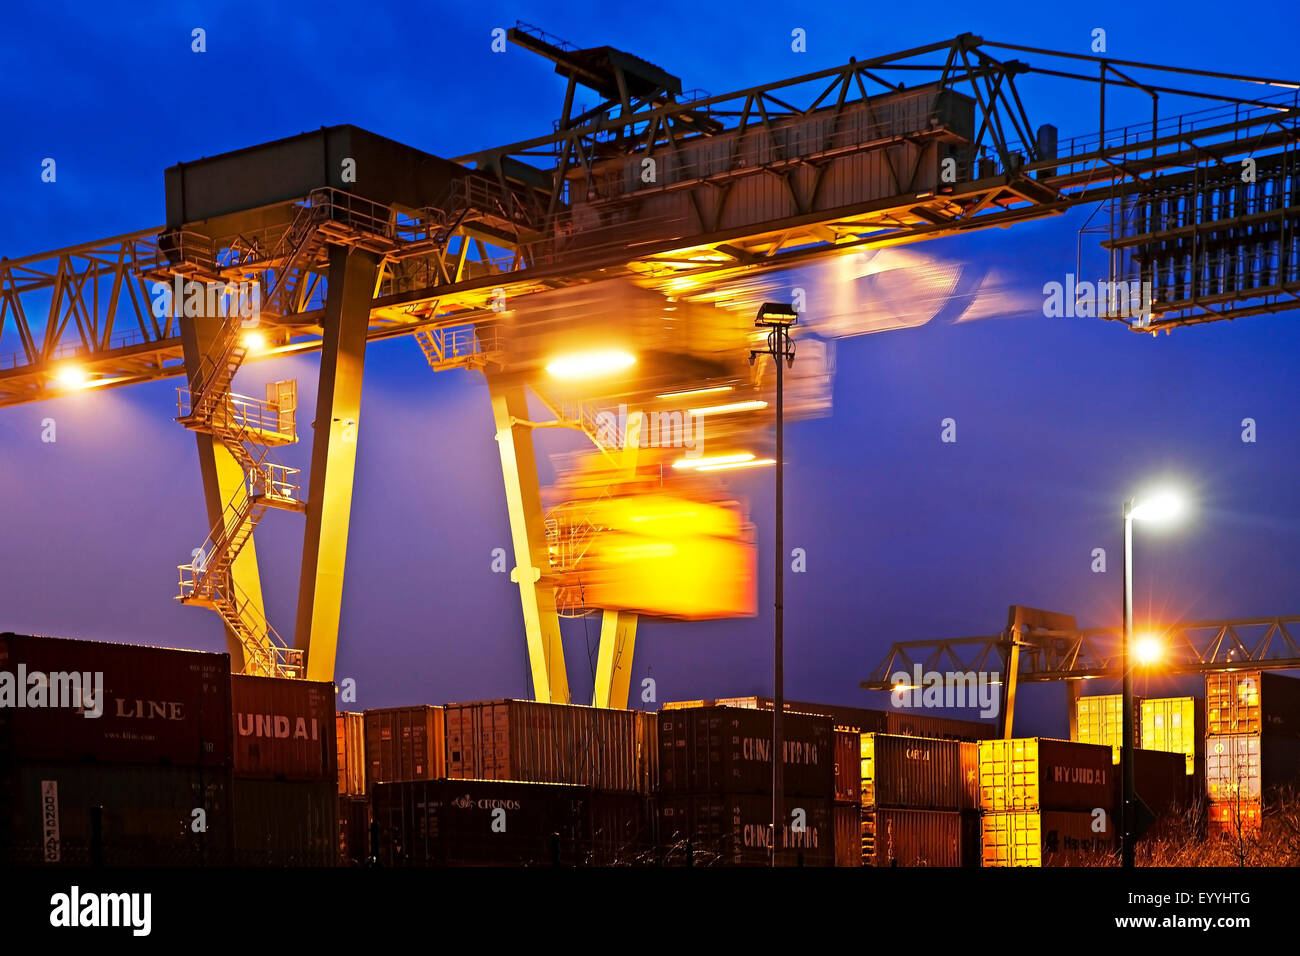 Dortmund Port with container gantry crane in the evening, Germany, North Rhine-Westphalia, Ruhr Area, Dortmund - Stock Image